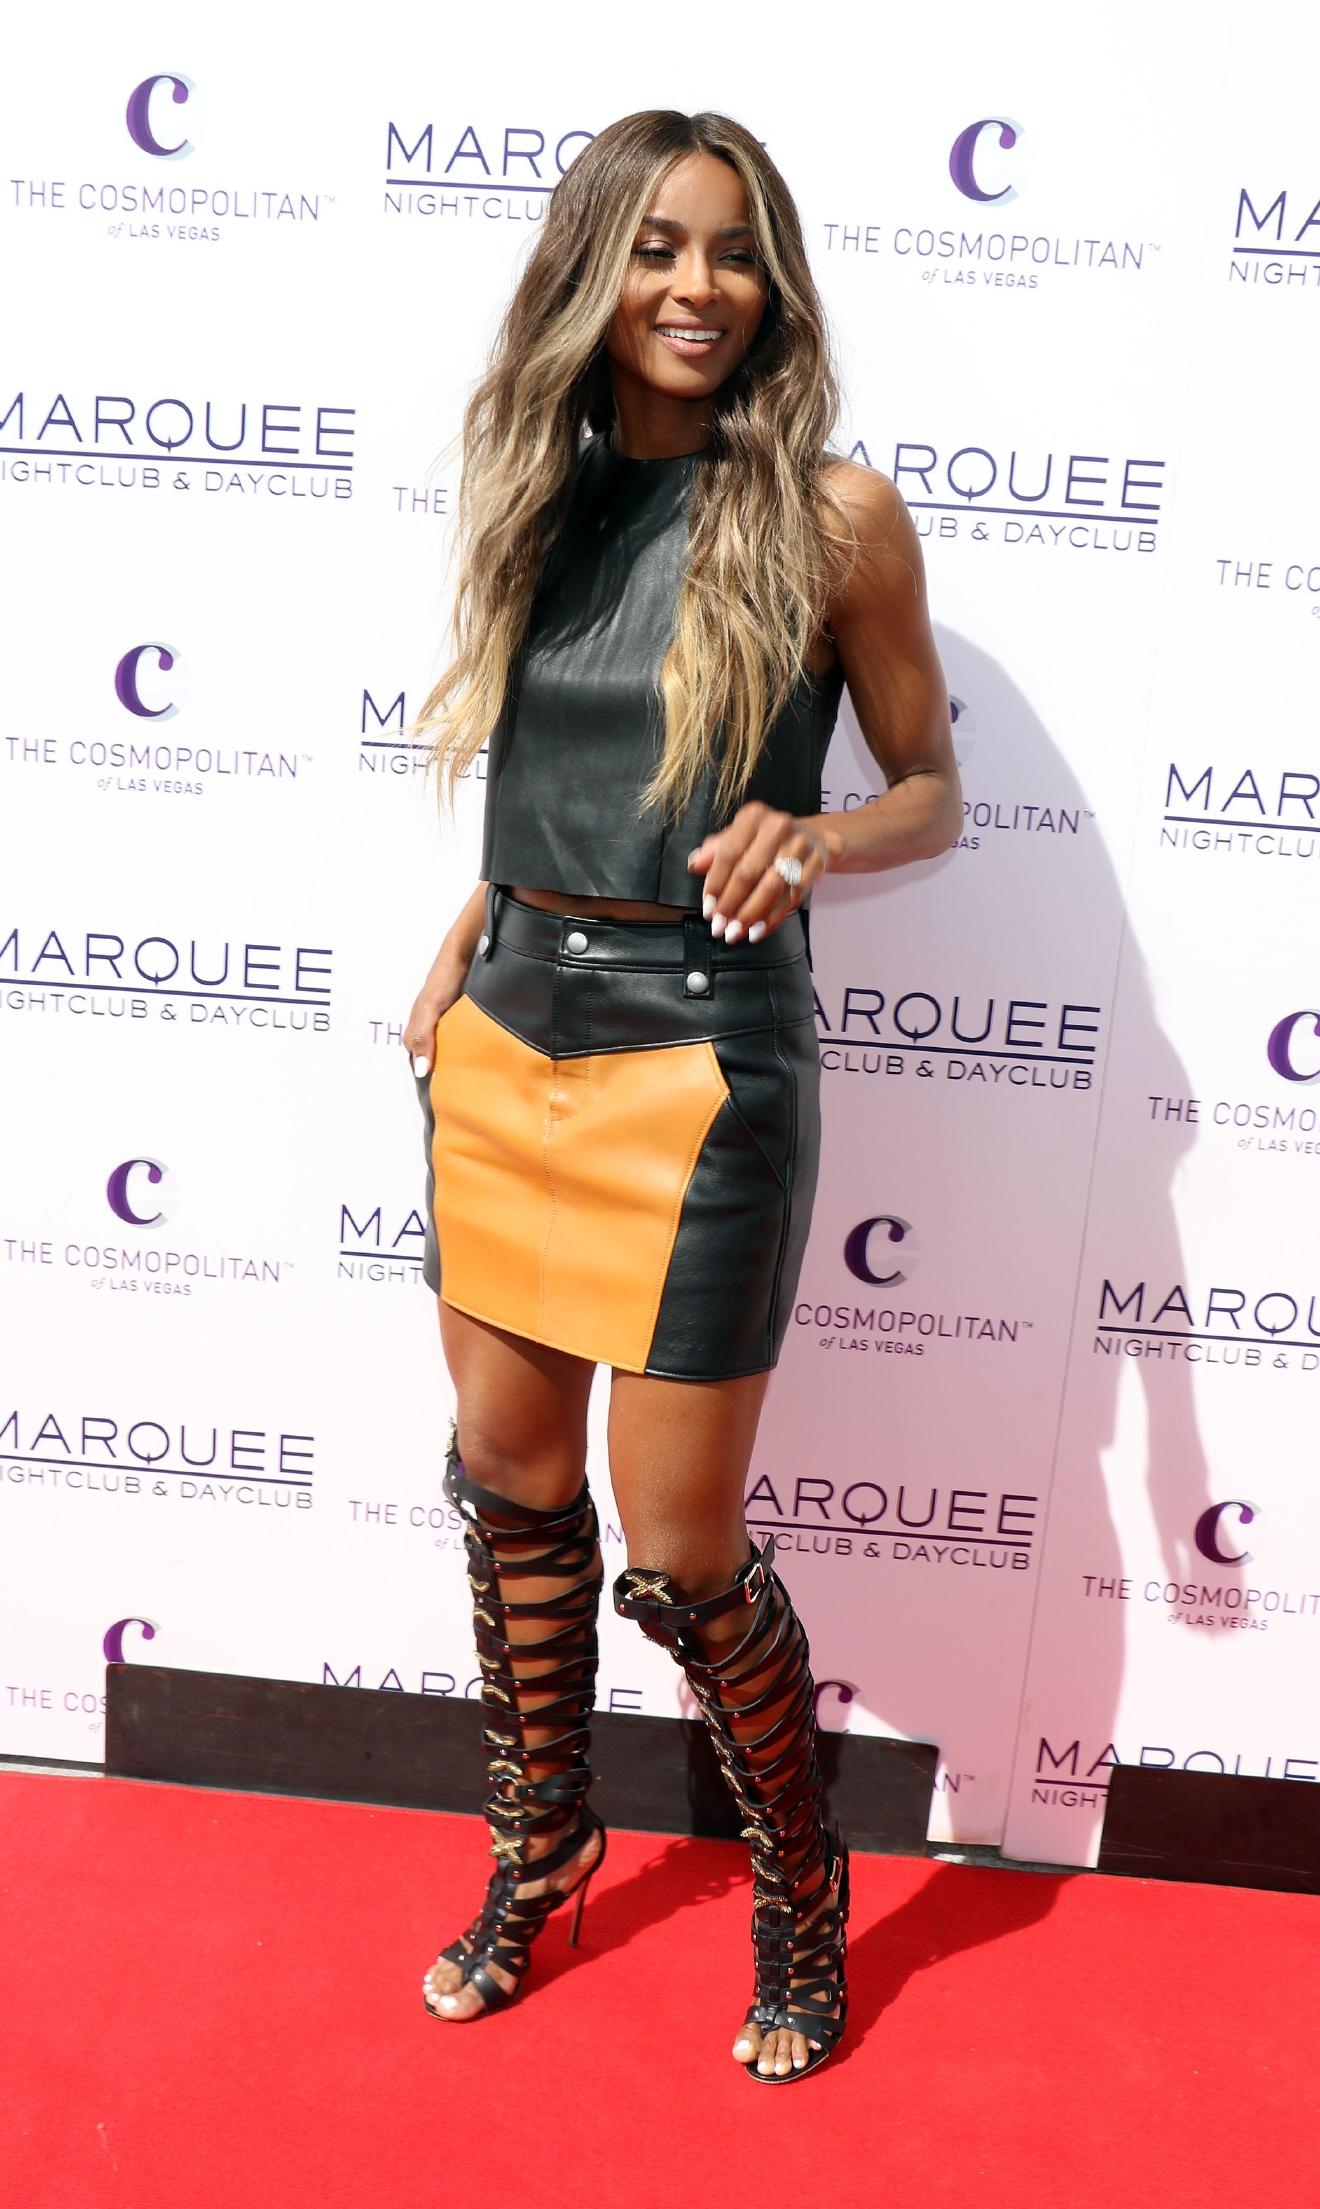 Marquee Dayclub Season Grand Opening With Dash Berlin and Special Performance by Ciara.  Featuring: Ciara Where: Las Vegas, Nevada, United States When: 19 Mar 2016 Credit: DJDM/WENN.com